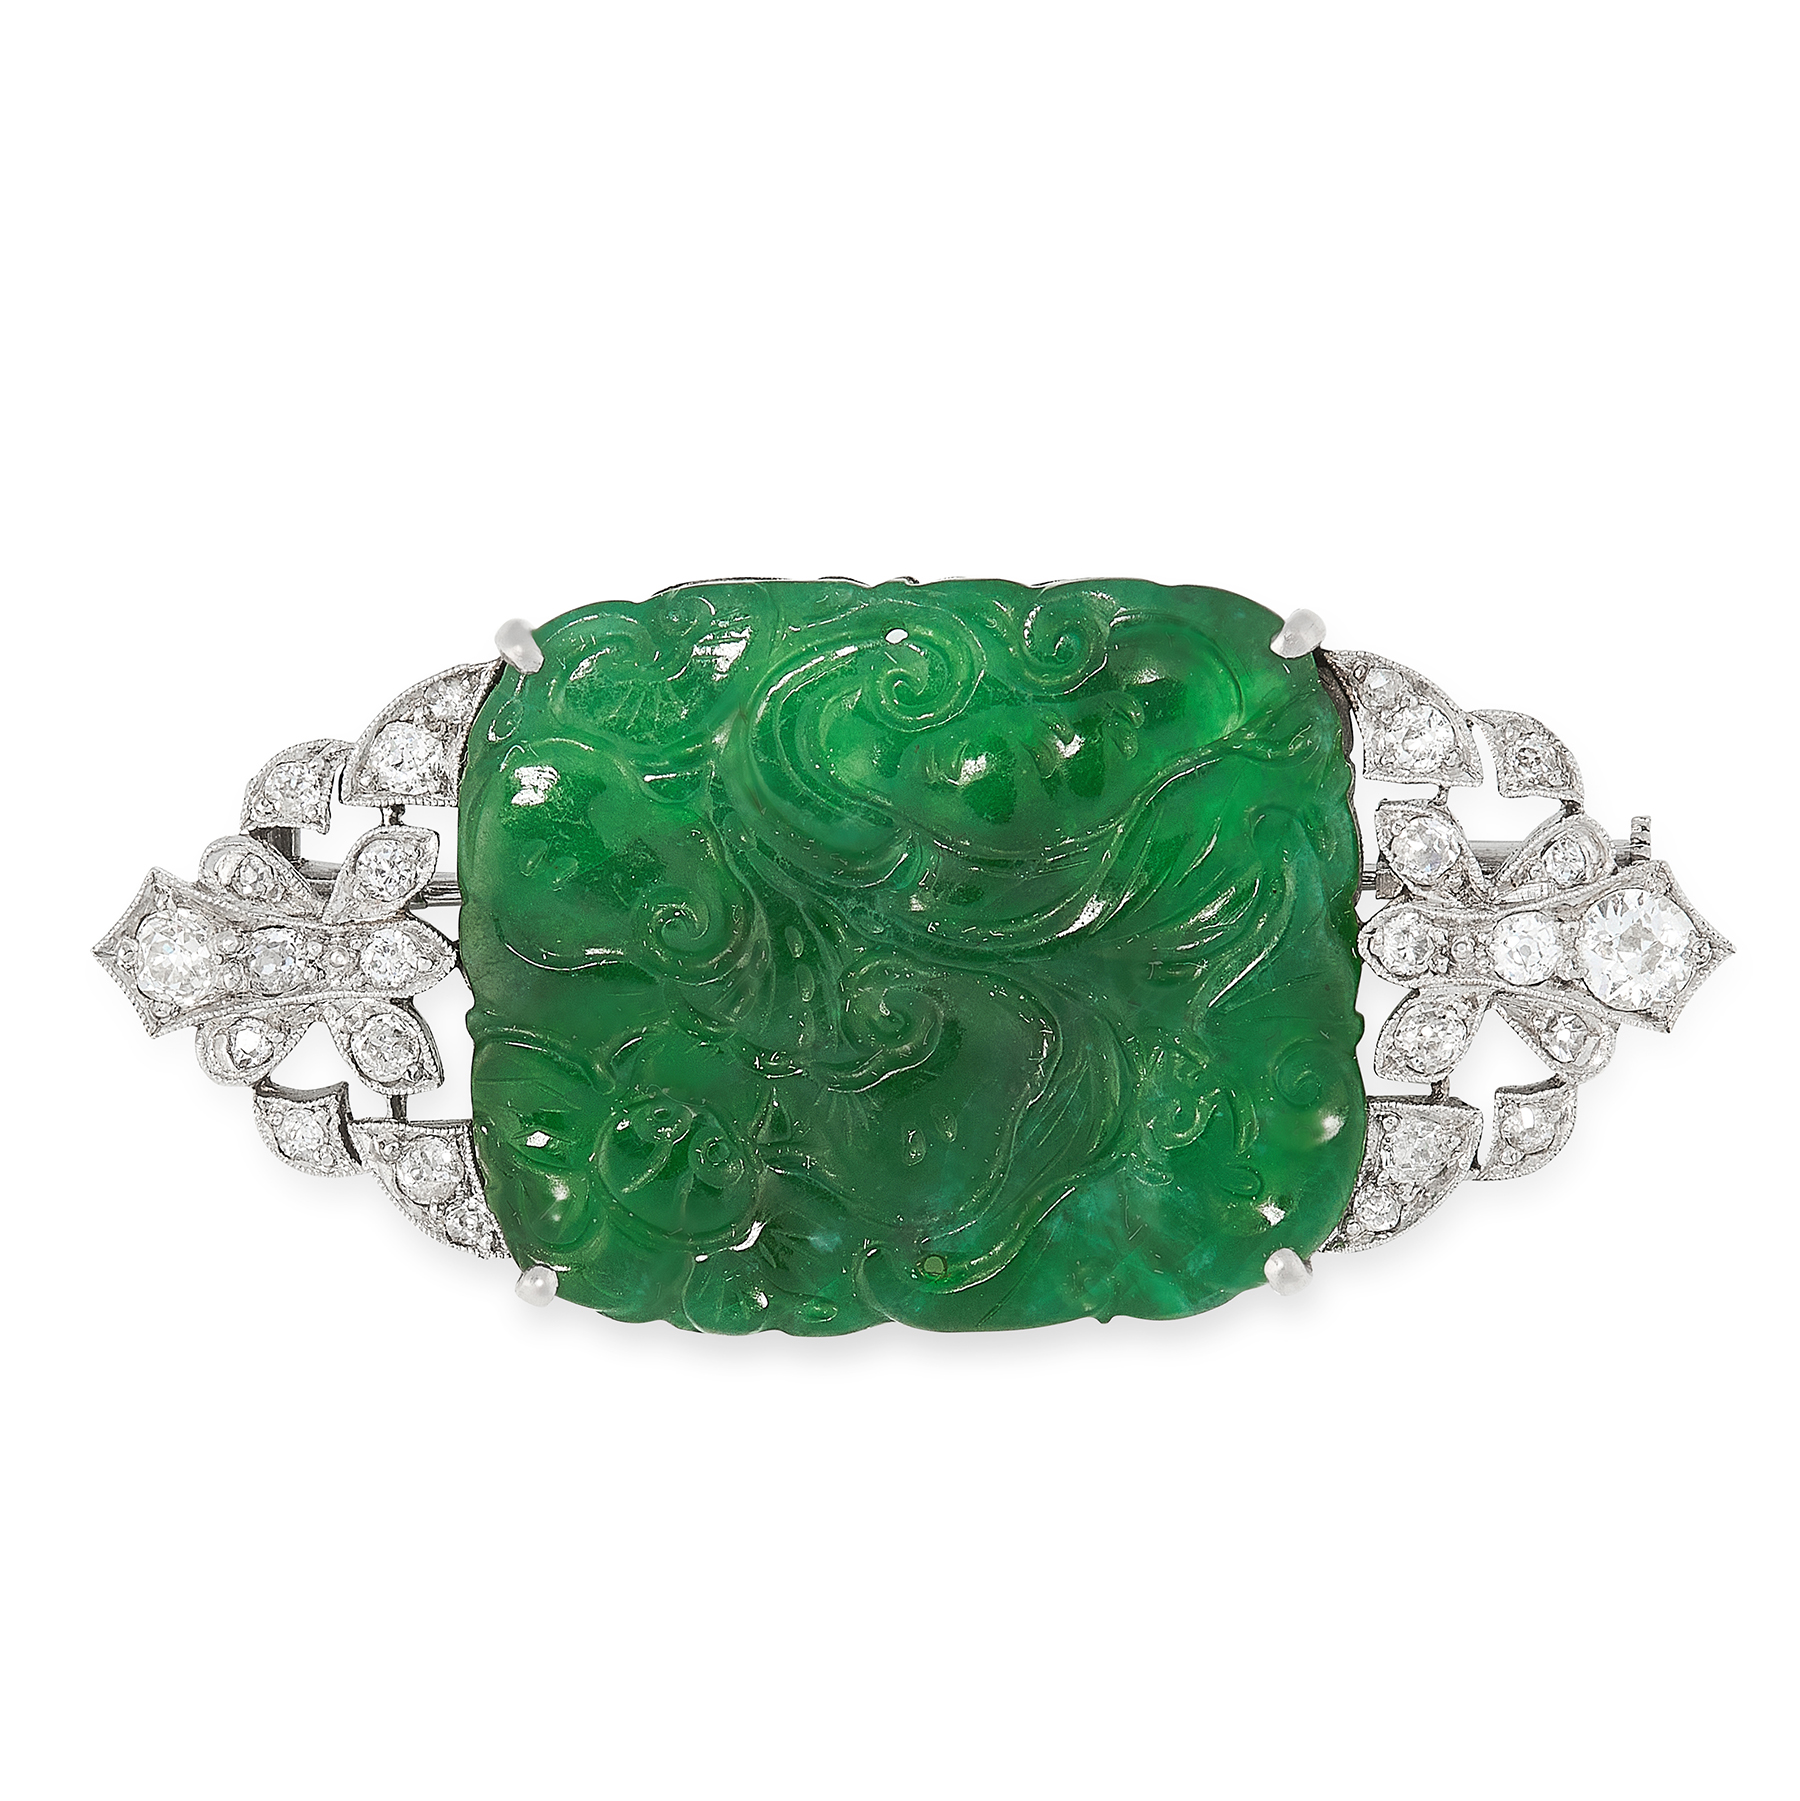 AN ANTIQUE JADEITE JADE AND DIAMOND BROOCH in white gold, set with a cushion shaped piece of